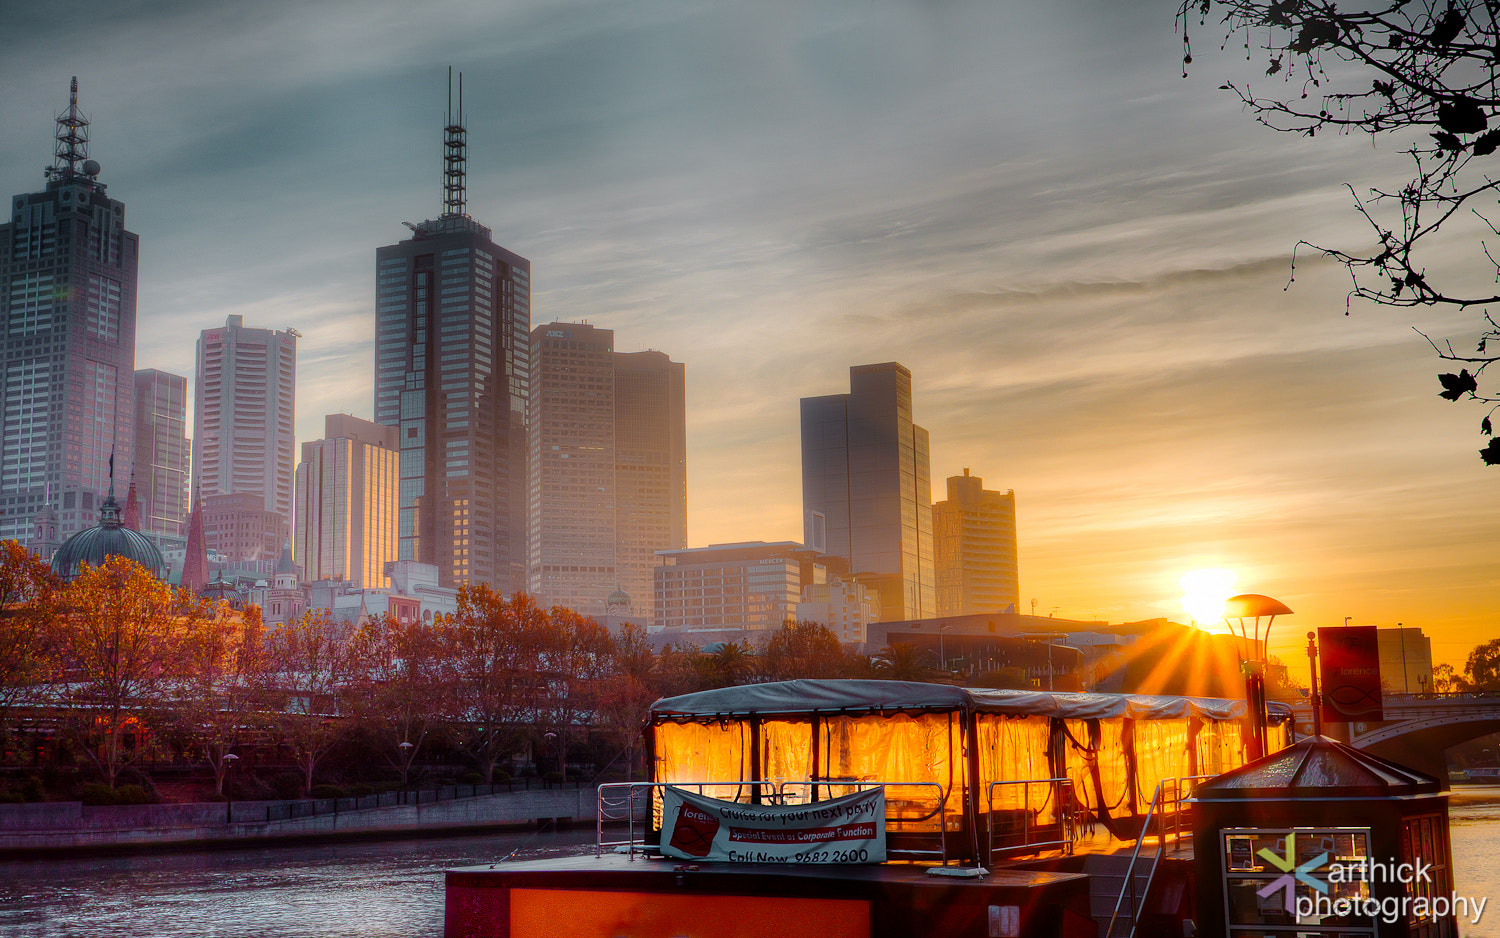 Photograph Melbourne Sunrise!  by Karthick Ramachandran on 500px